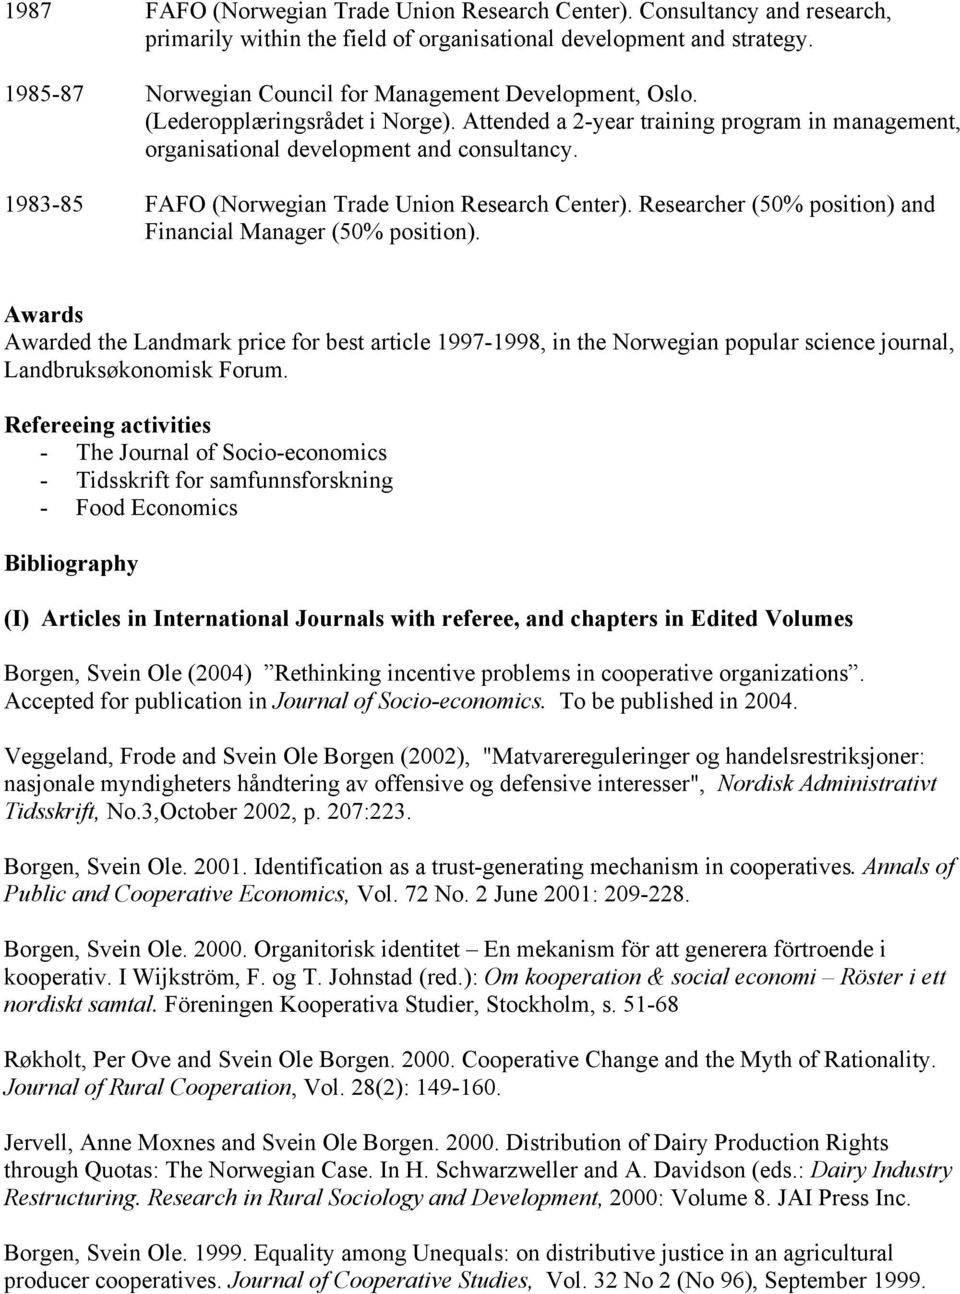 1983-85 FAFO (Norwegian Trade Union Research Center). Researcher (50% position) and Financial Manager (50% position).